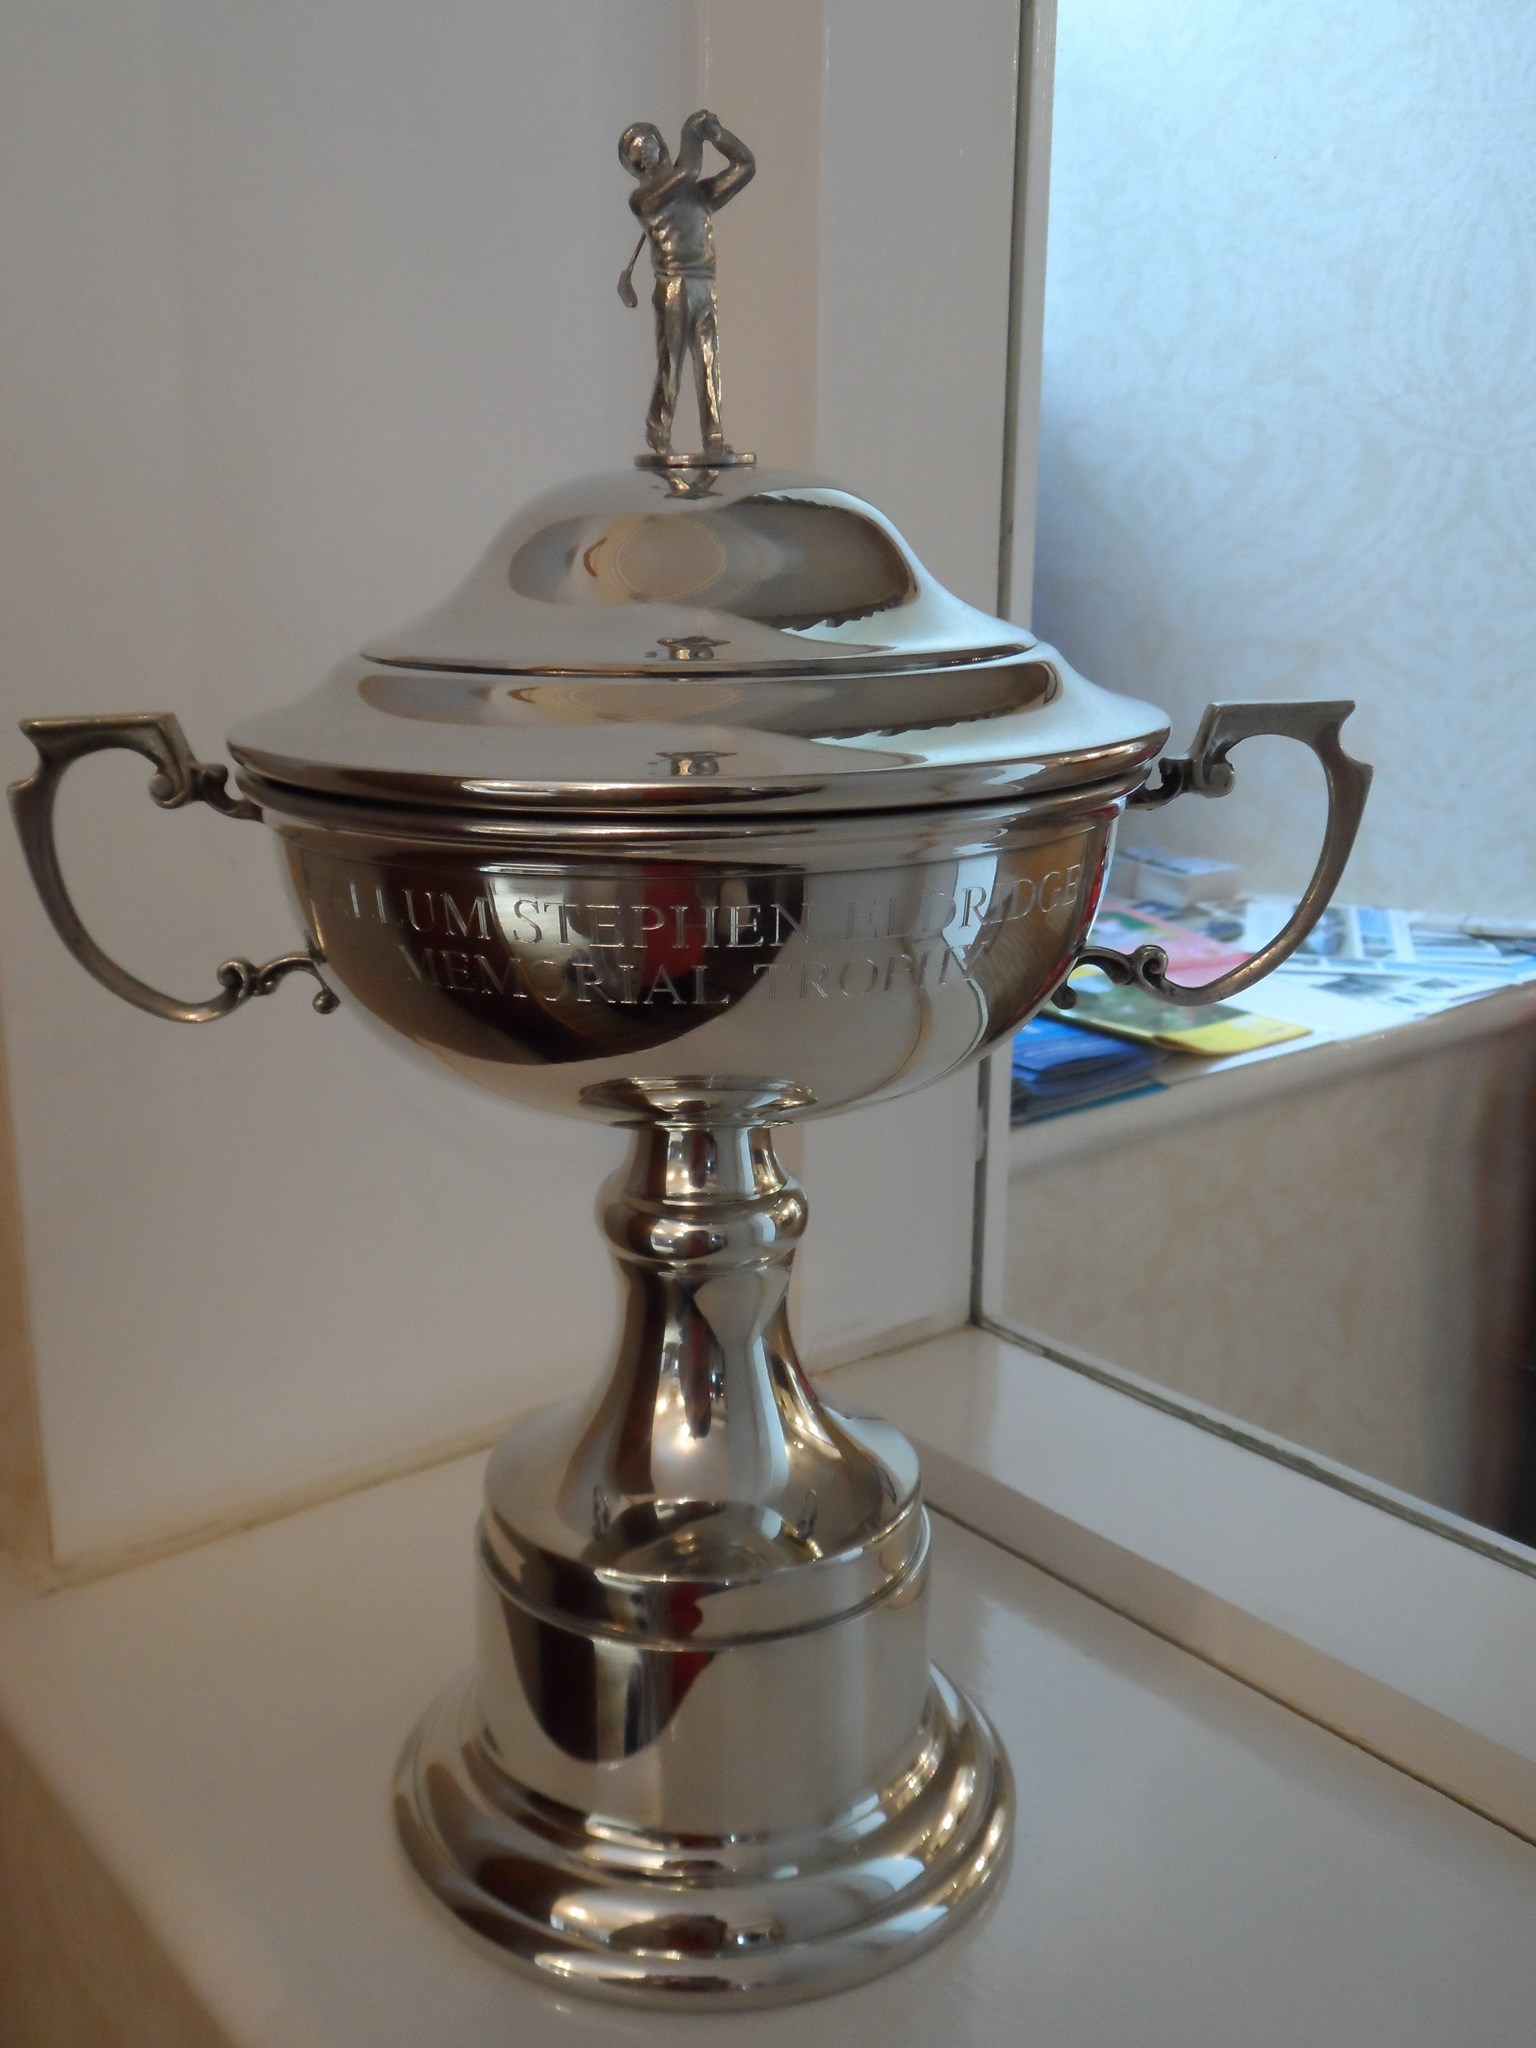 The Trophy